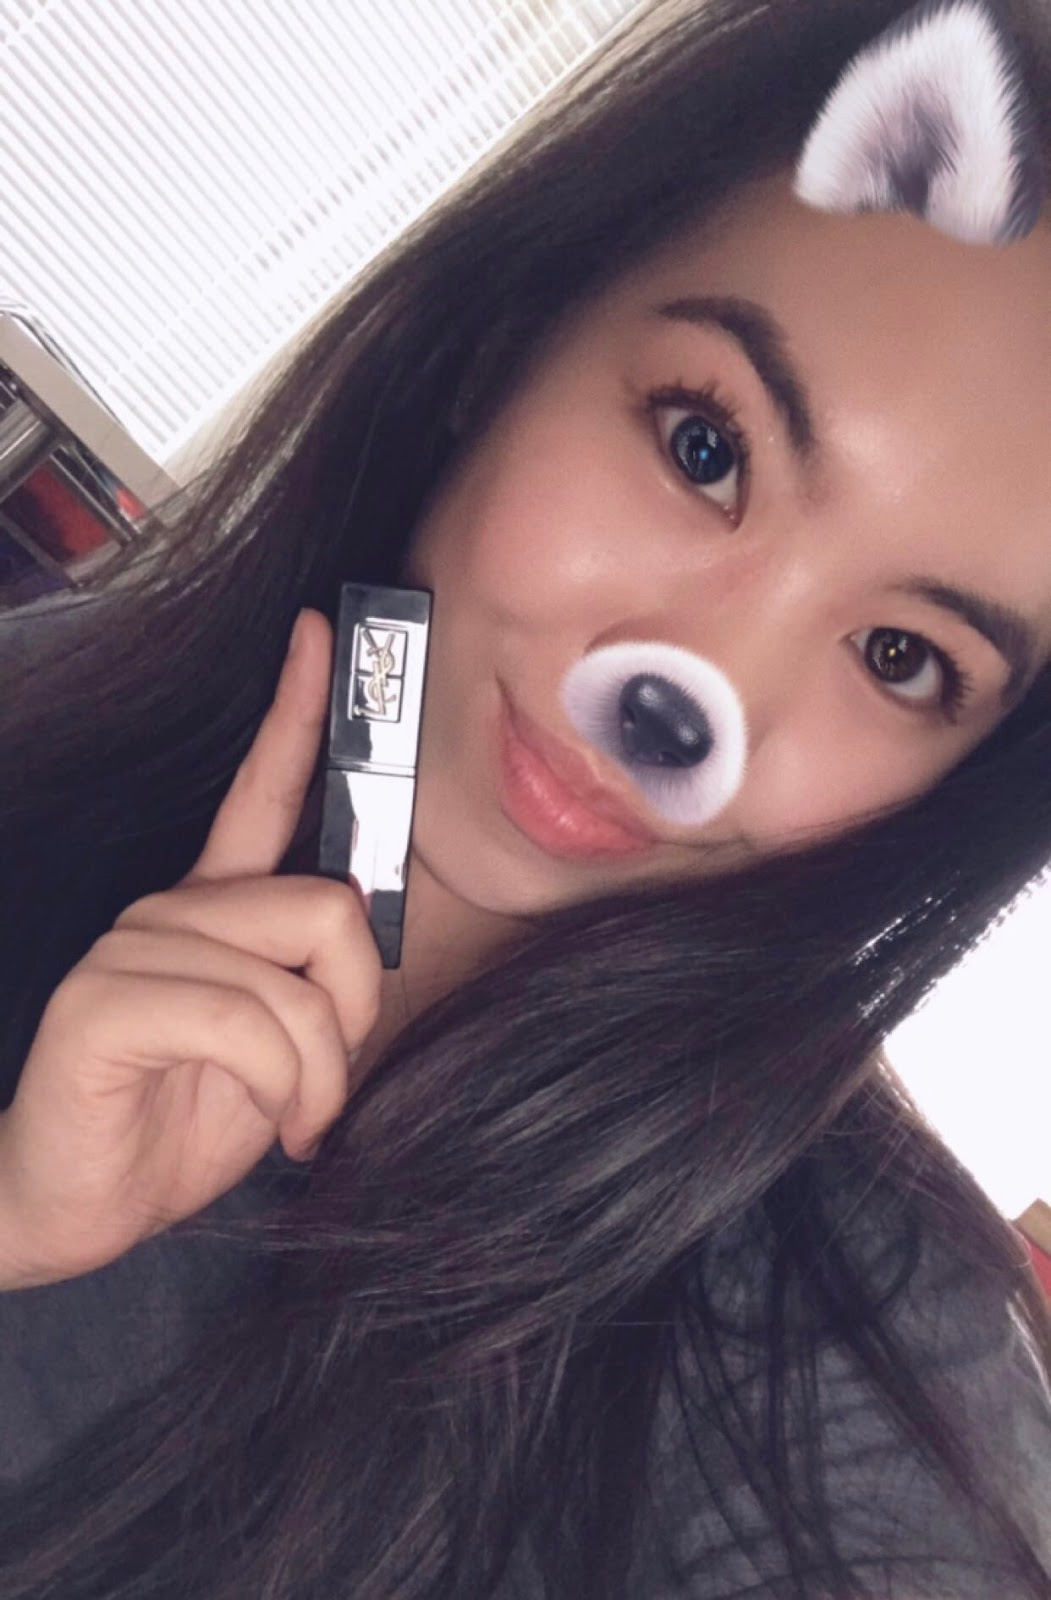 Ysl Vinyl Cream Lip Stain 407 Carmin Session Melissaawongg